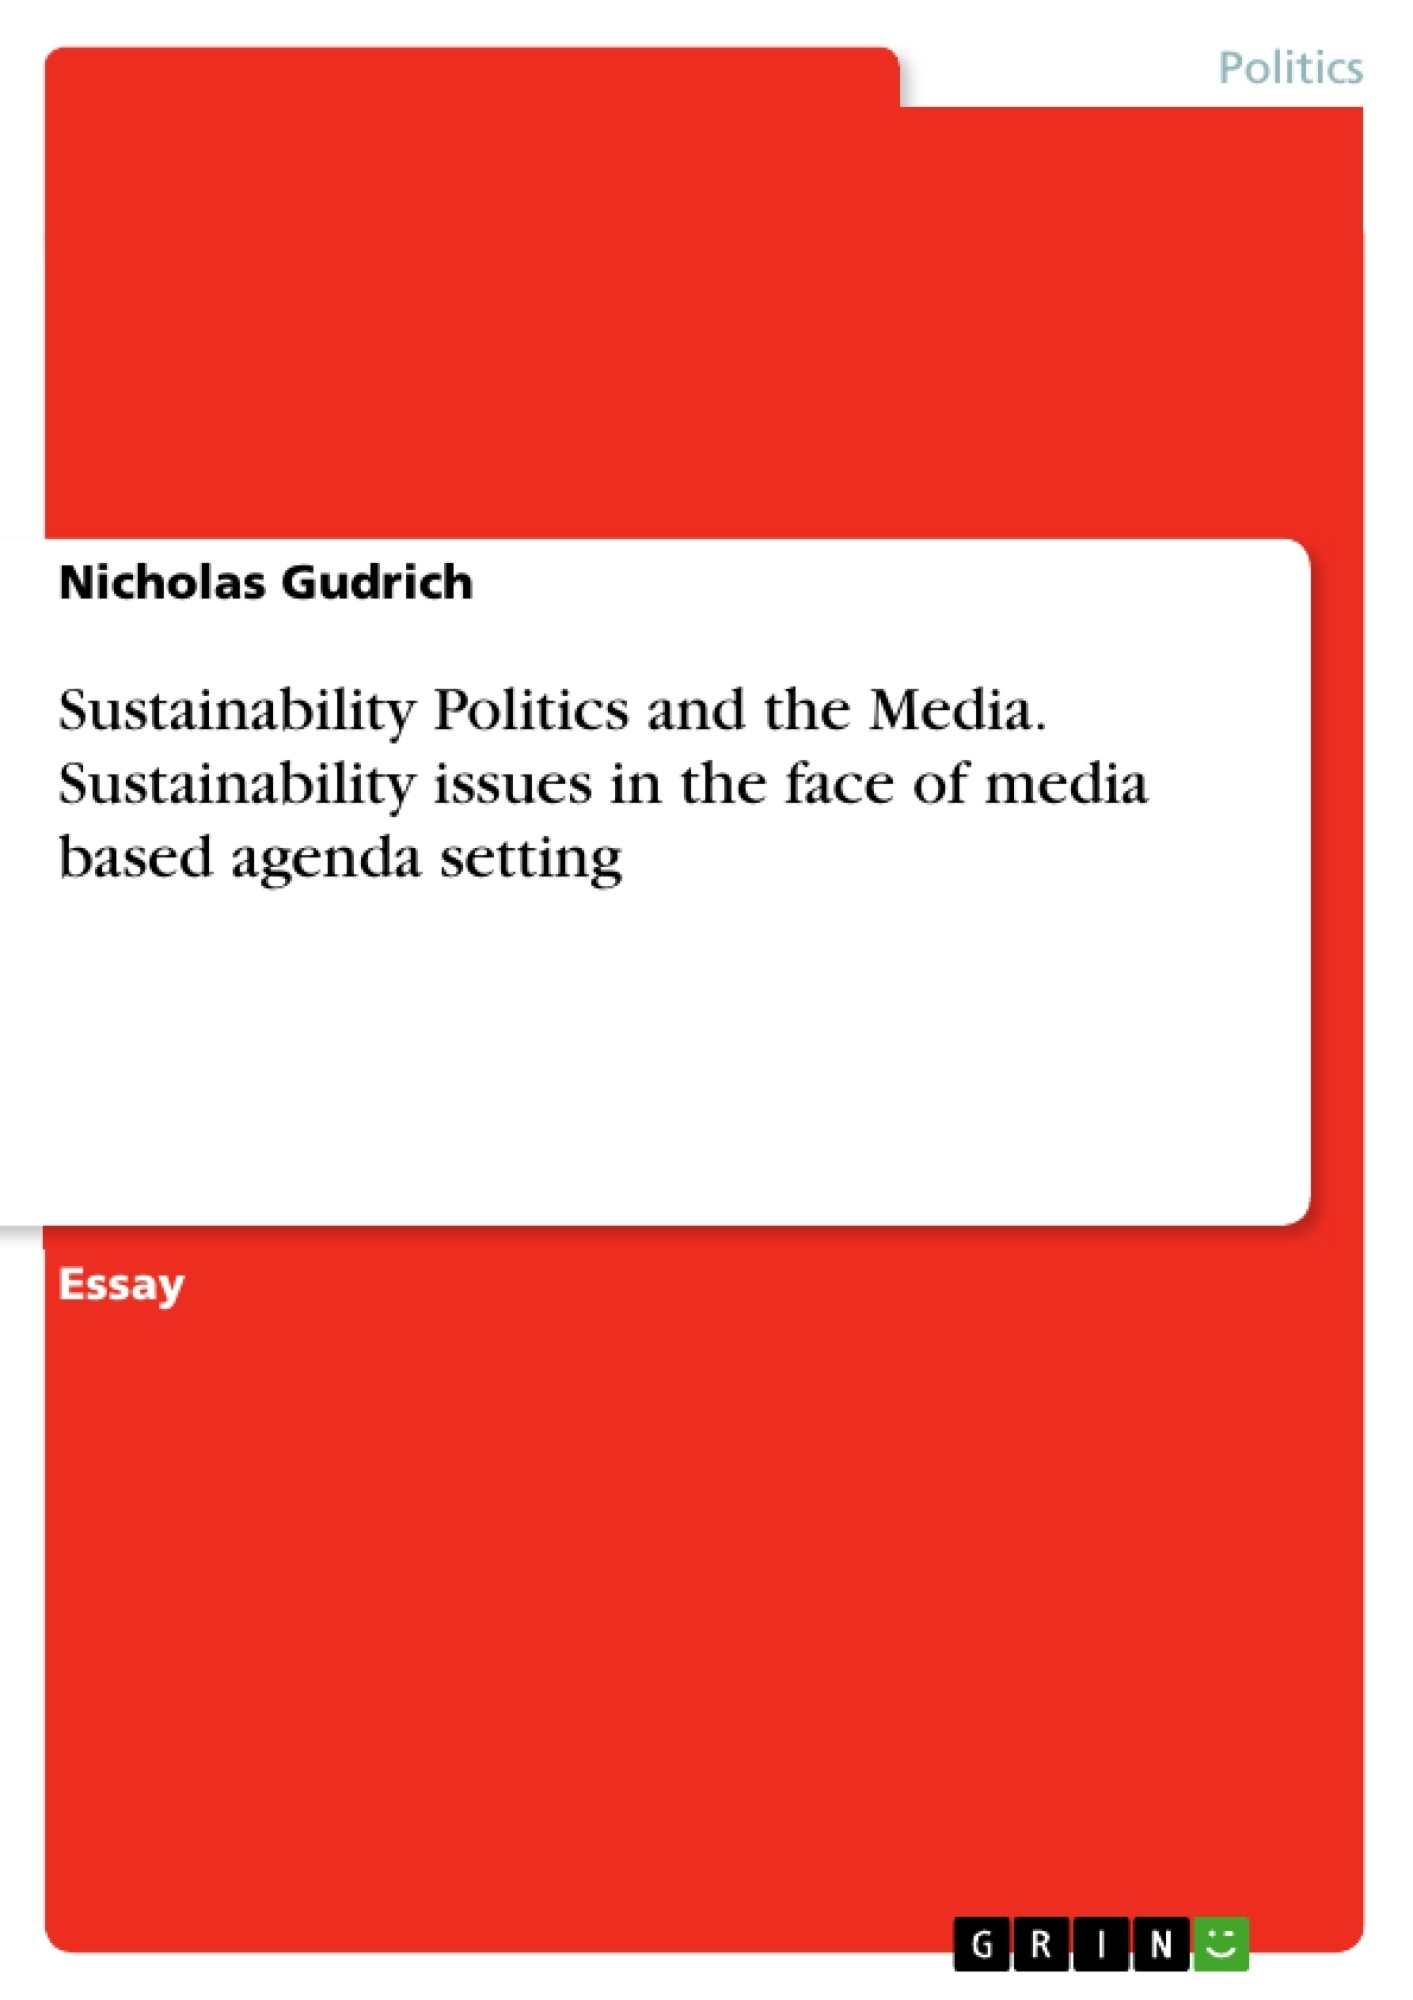 Title: Sustainability Politics and the Media. Sustainability issues in the face of media based agenda setting